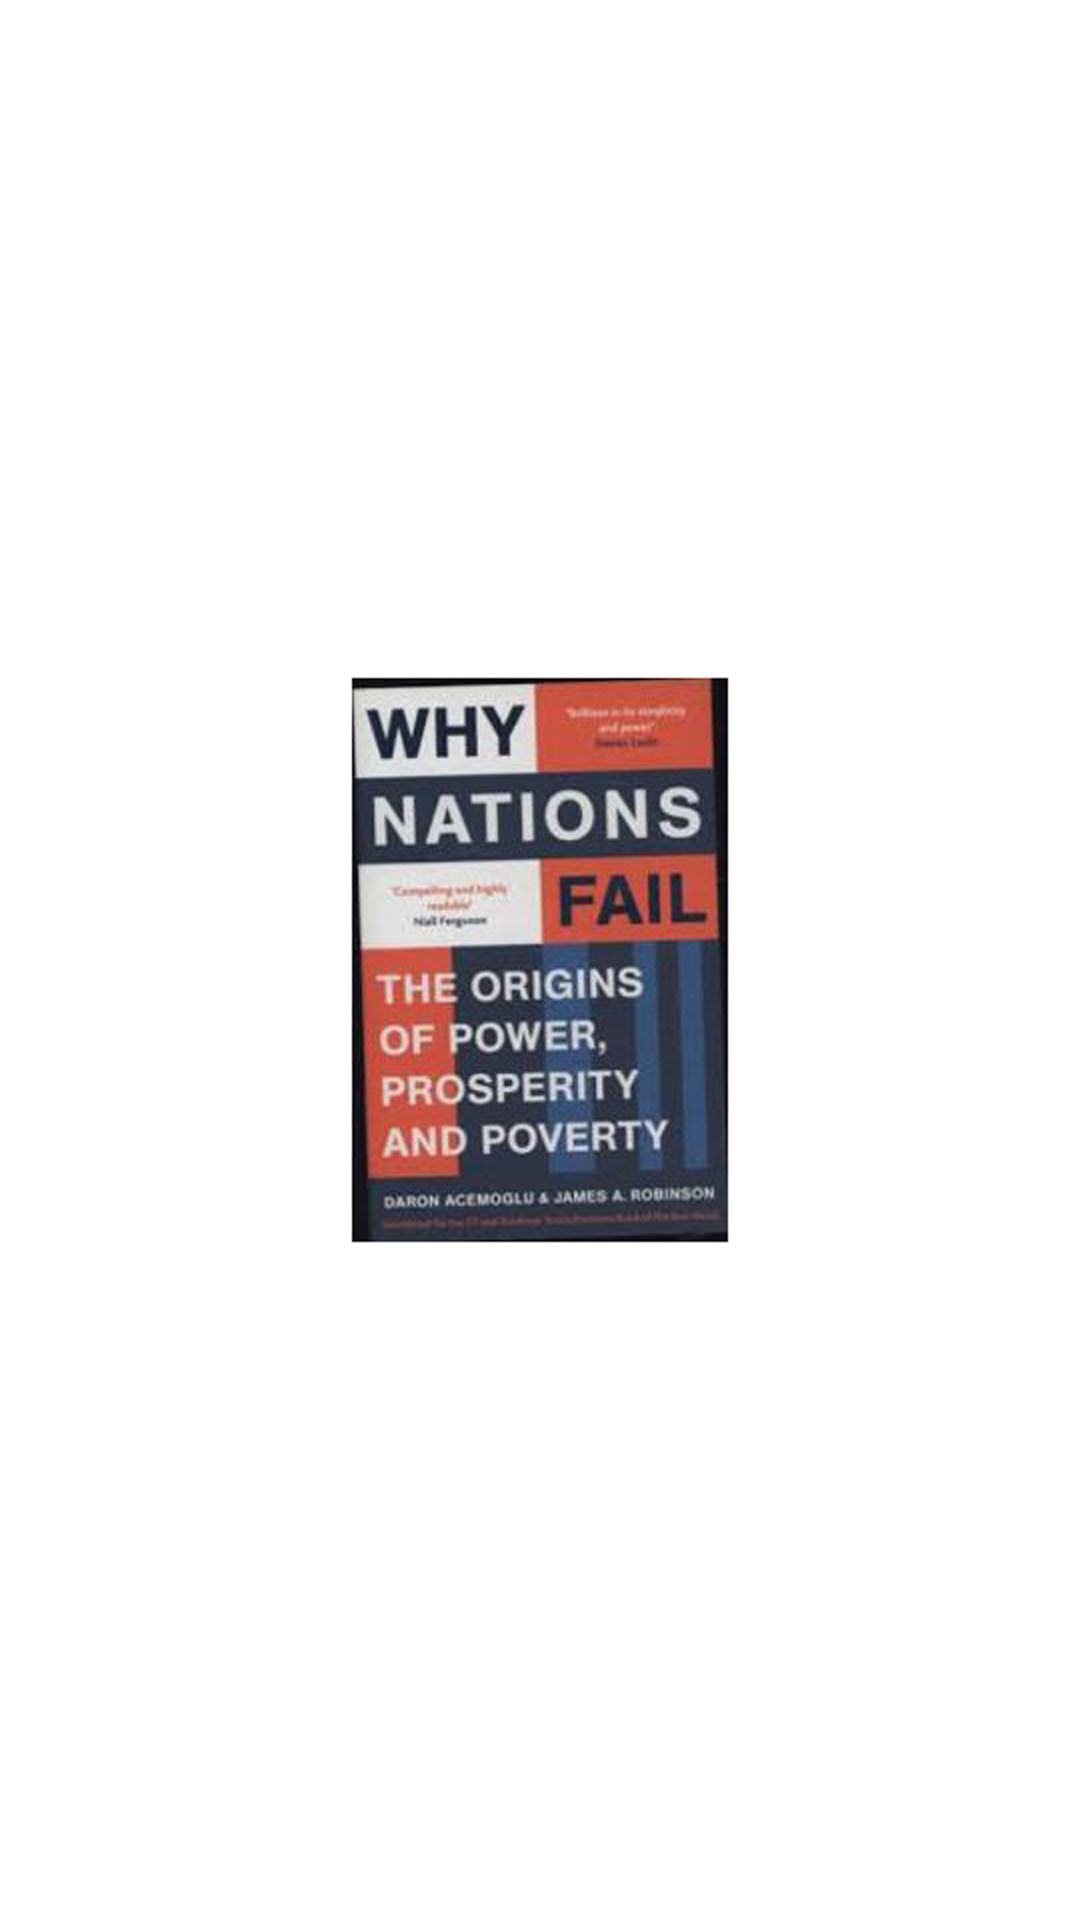 why nations fails book review Why nations fail offers an excellent way for any interested reader to learn about them and their consequences whereas most writing by academic economists is incomprehensible to the lay public, acemoglu and robinson have written this book so that it can be understood and enjoyed by all of us who aren't economists.